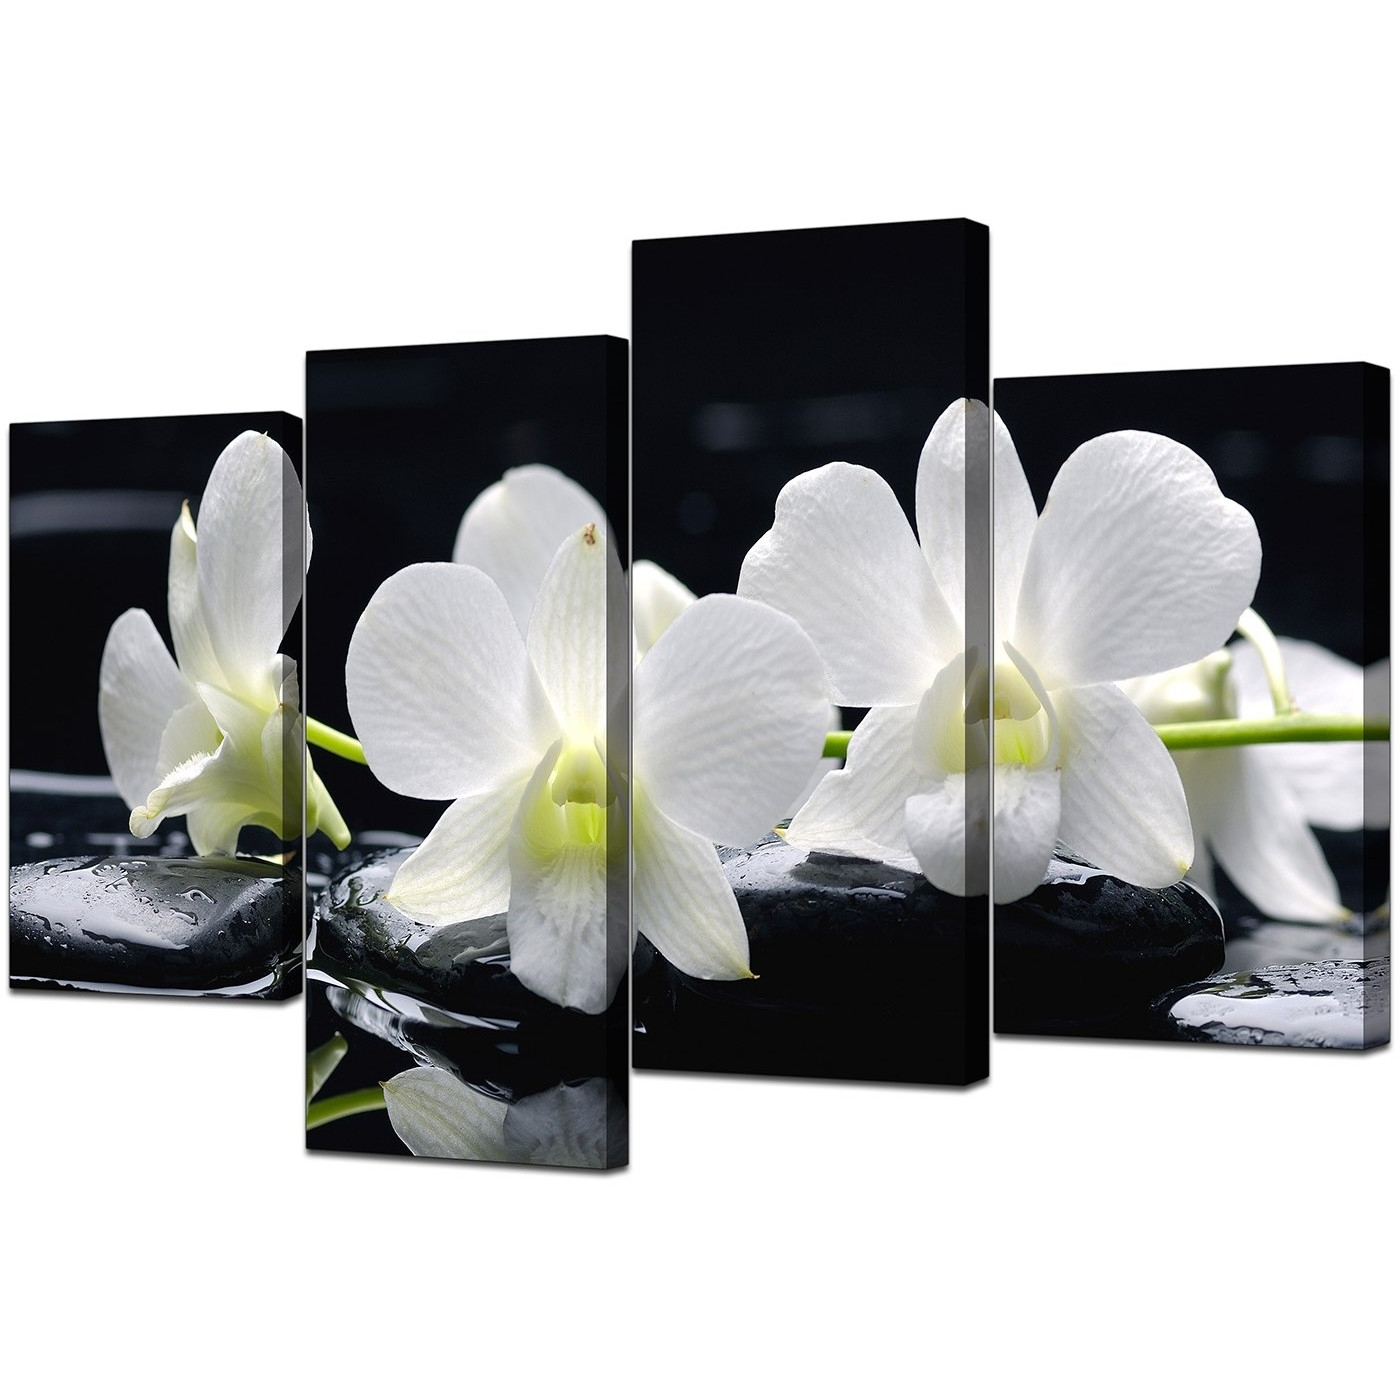 Orchid Canvas Wall Art In Well Known Canvas Wall Art Of Orchids In Black & White For Your Living Room (Gallery 11 of 15)